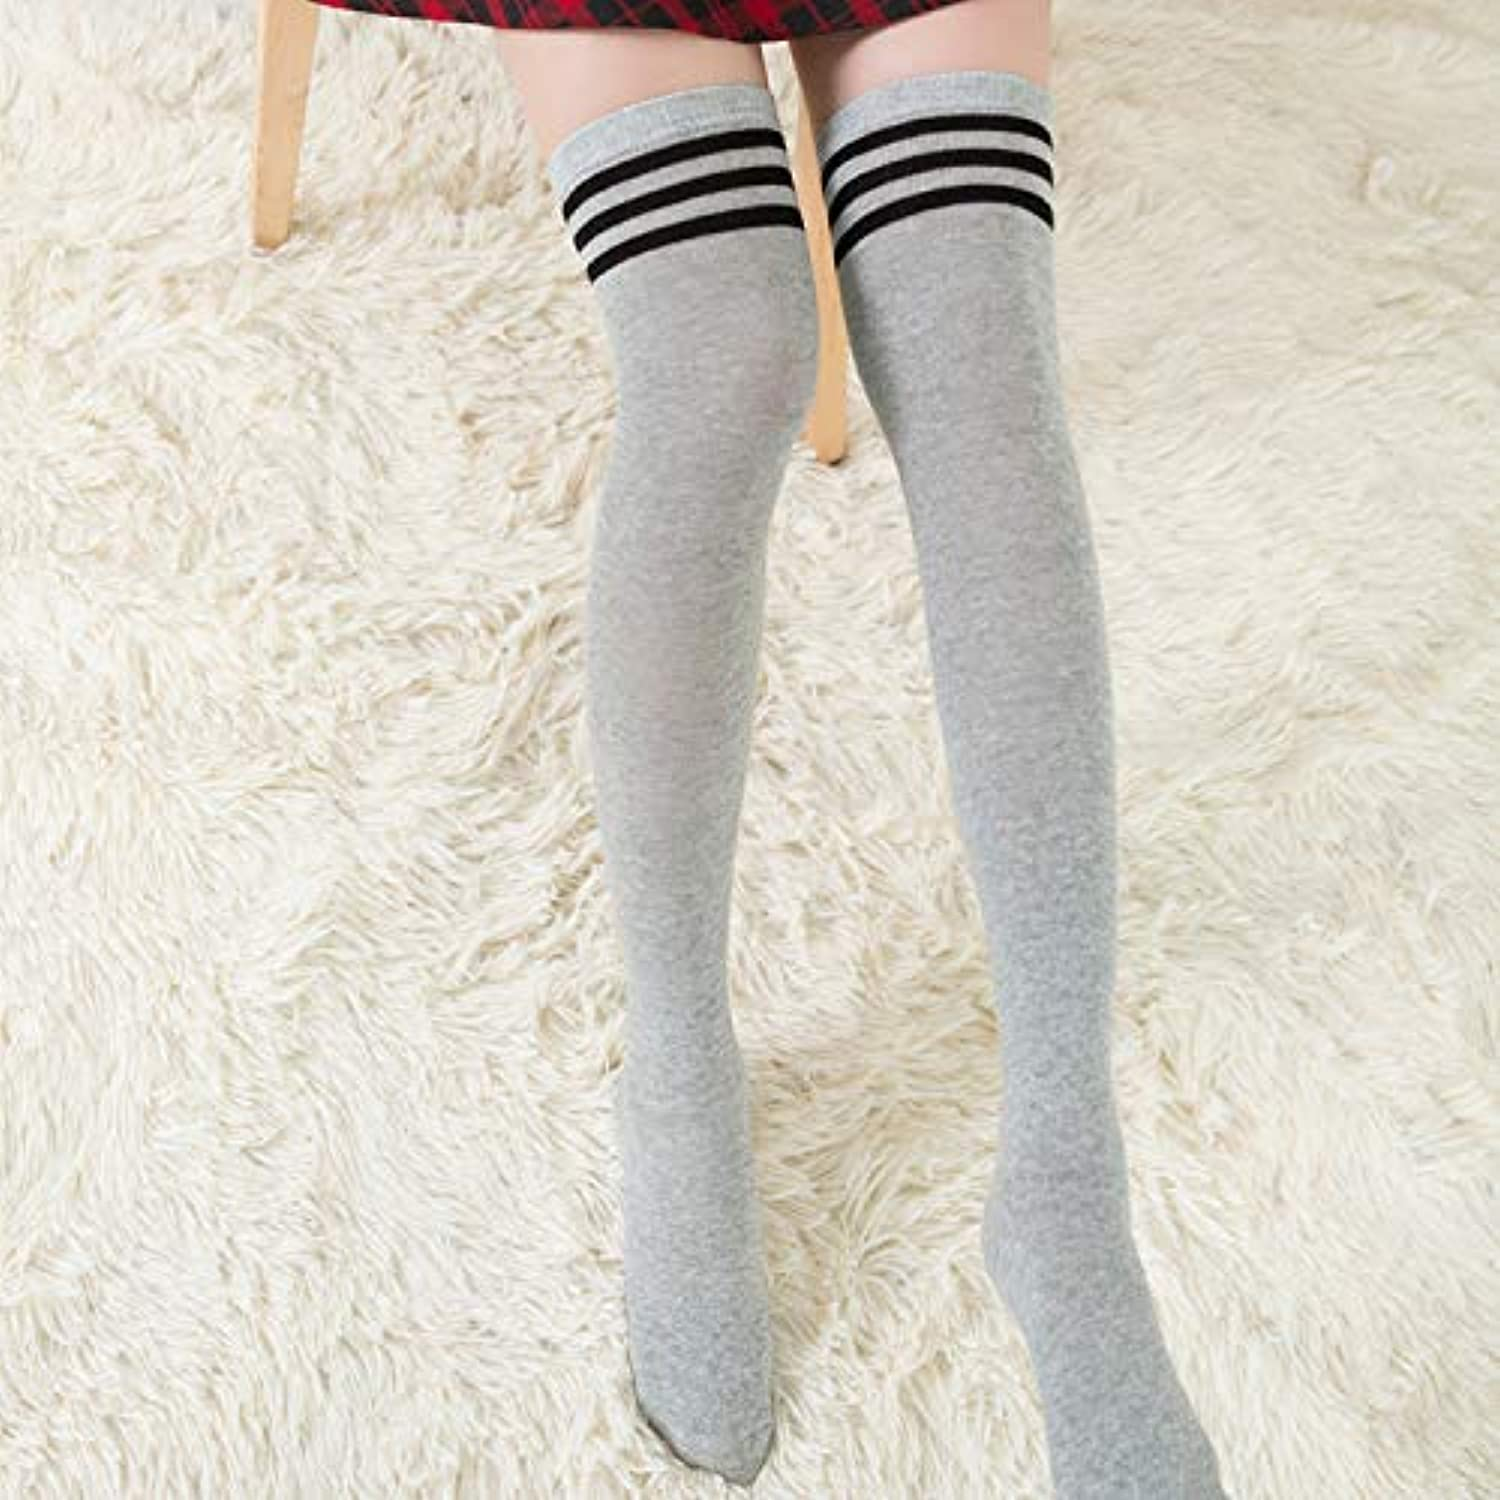 Lady's Socks Striped high Tube Over The Knee Autumn and Winter Ladies Stockings Knitting Three Bars Cotton Long (color   Light Grey)